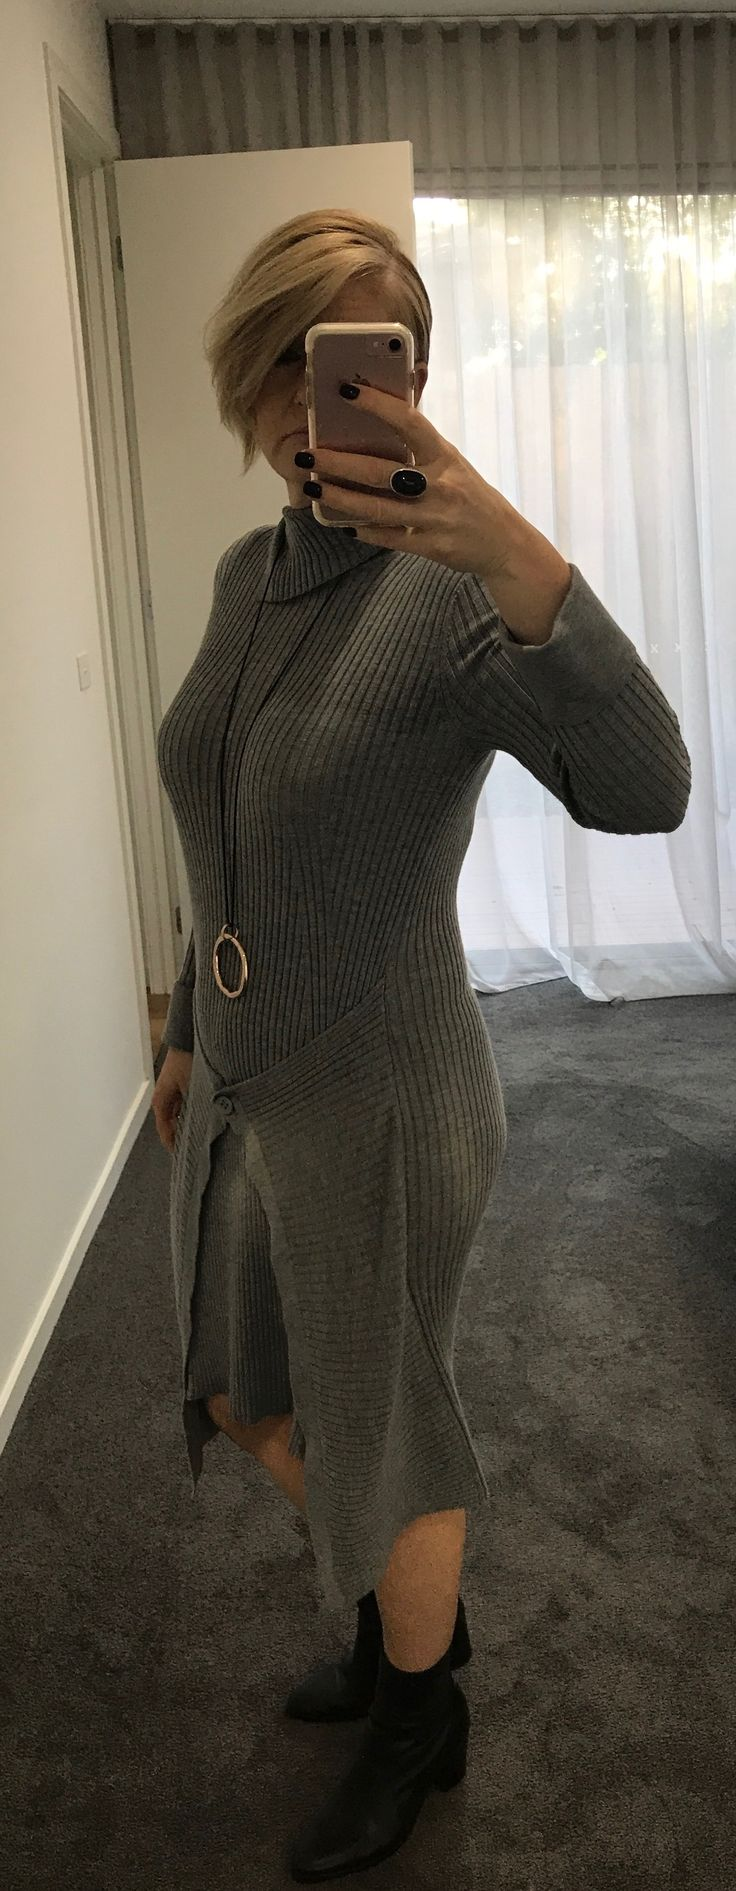 This dress from Willow is over 4 years old.  A great investment that I have in grey and black.  Thrown on with black boots, style made too easy!  A knit dress with a twist is always a winner.